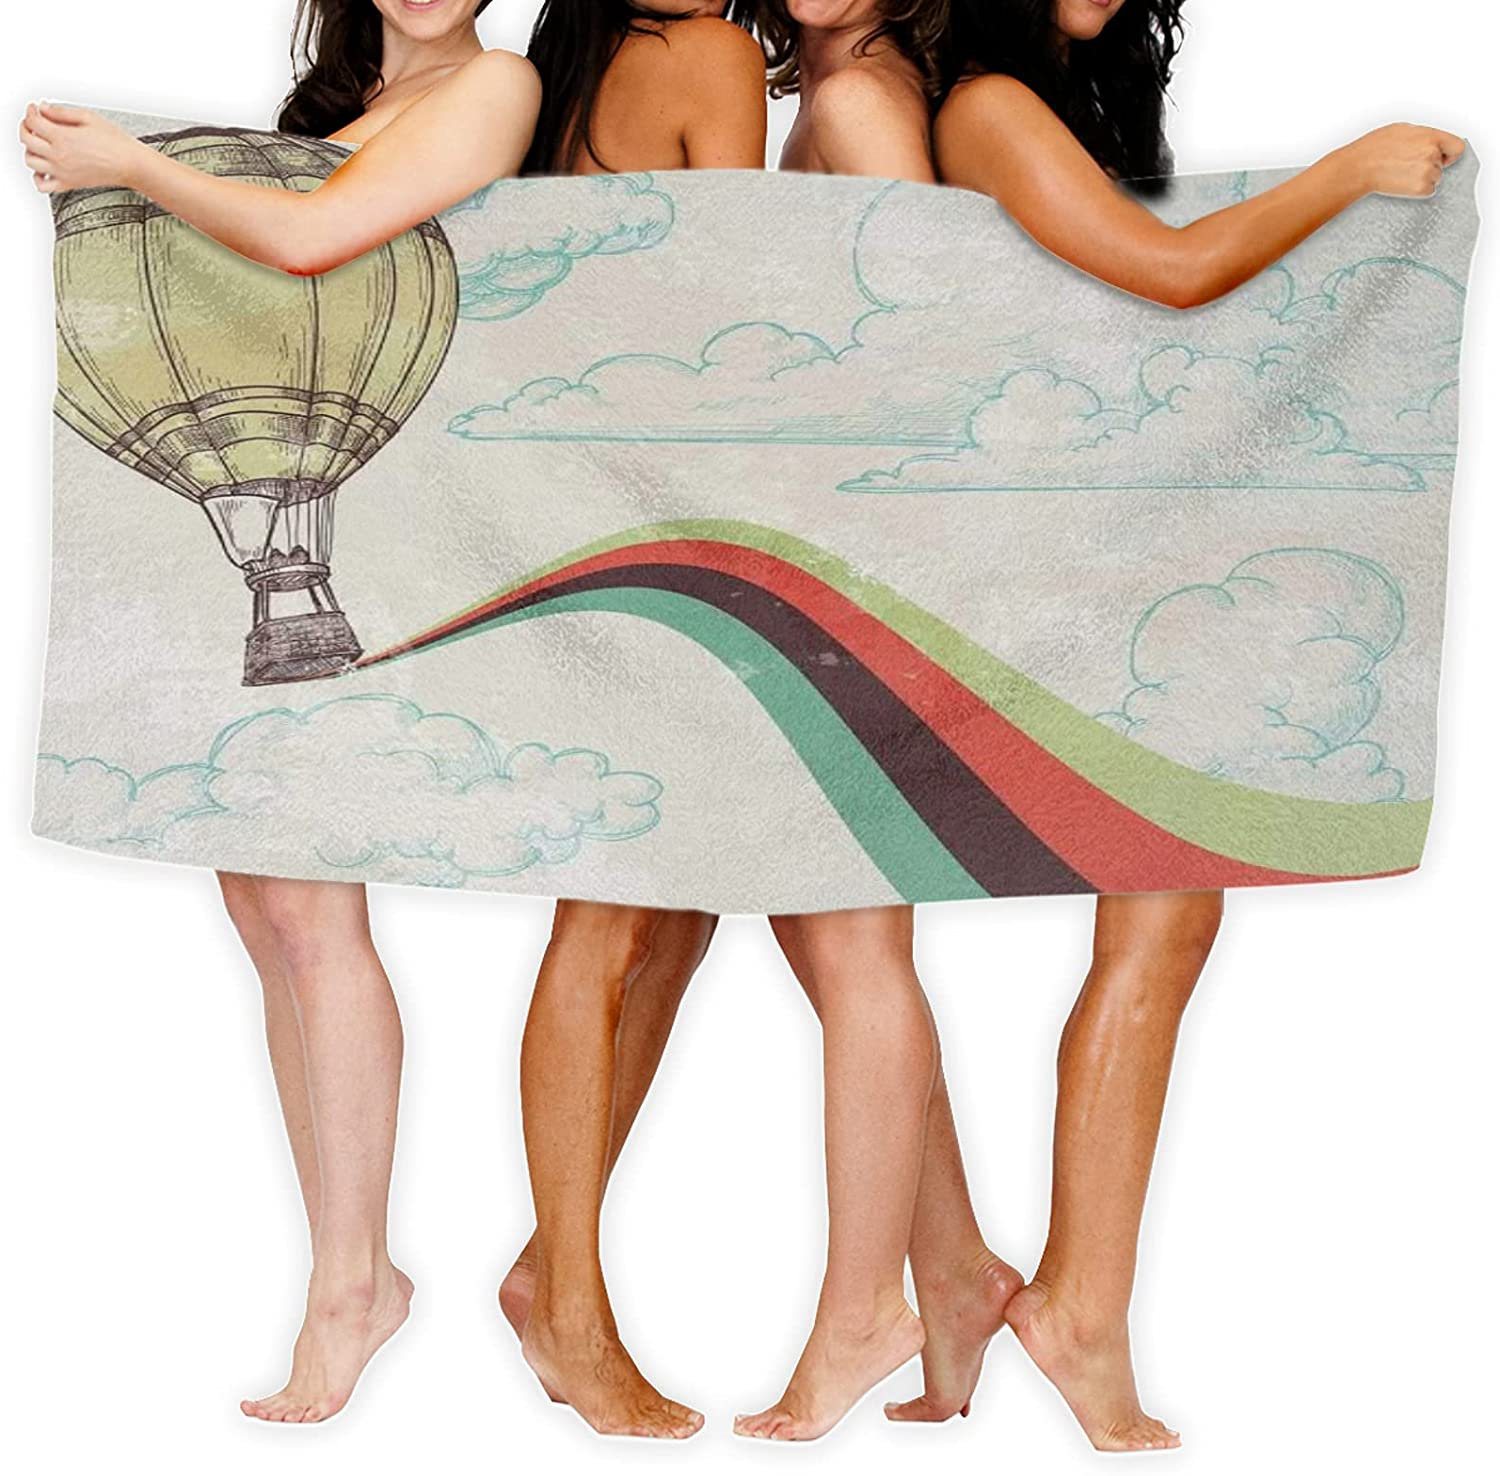 ADONINELP Ultra Absorbent New Shipping Free Shipping Microfiber Bath Hot Towel Air It is very popular Balloon